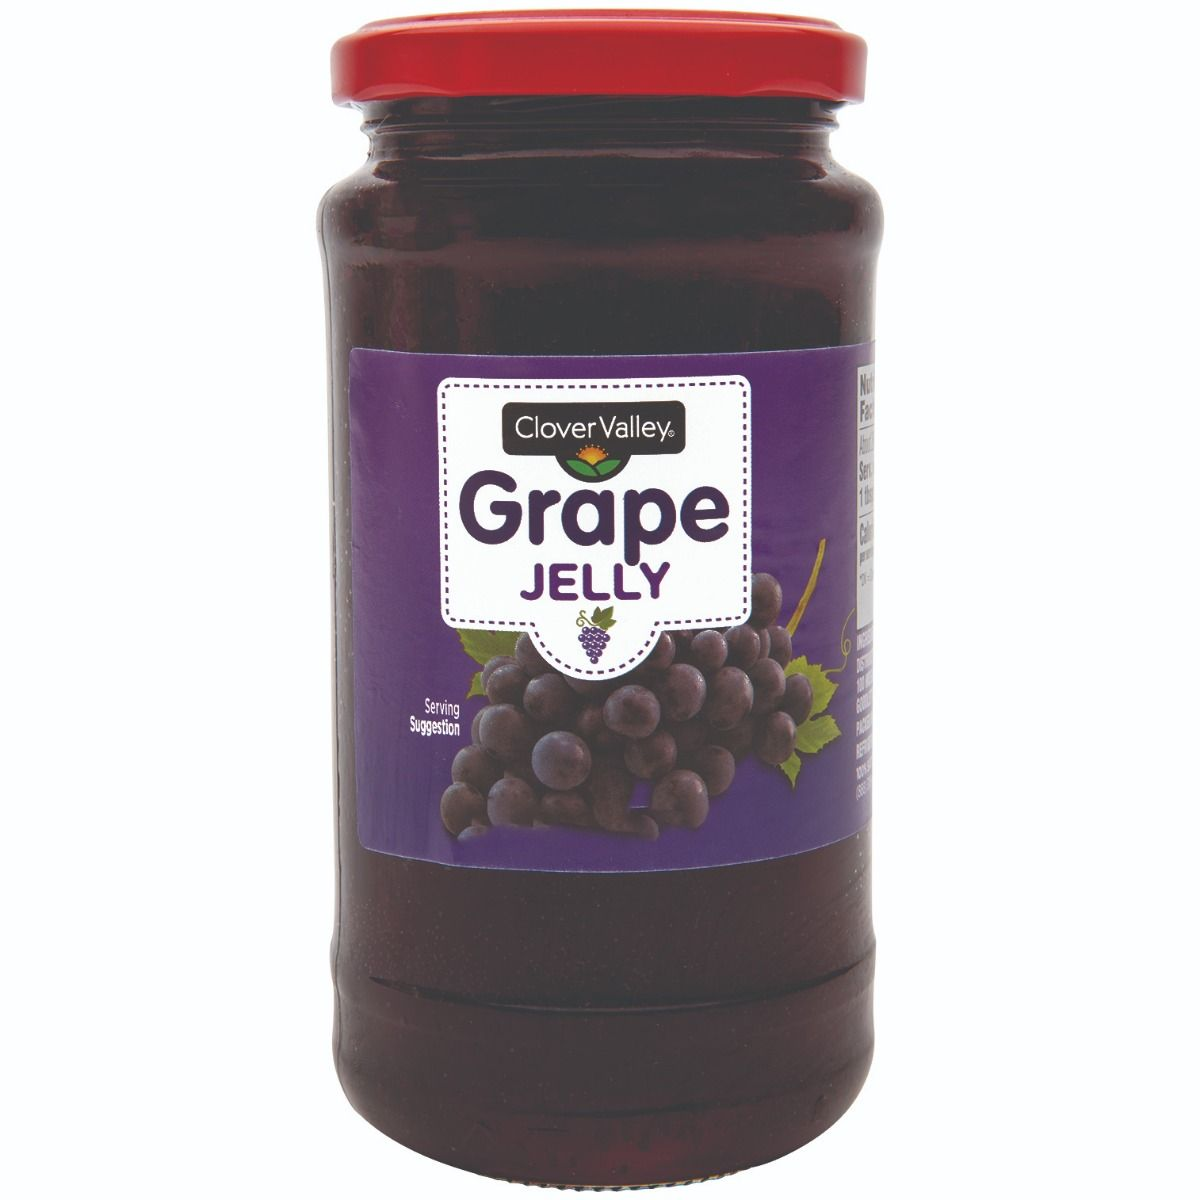 Clover Valley Grape Jelly, 18 oz